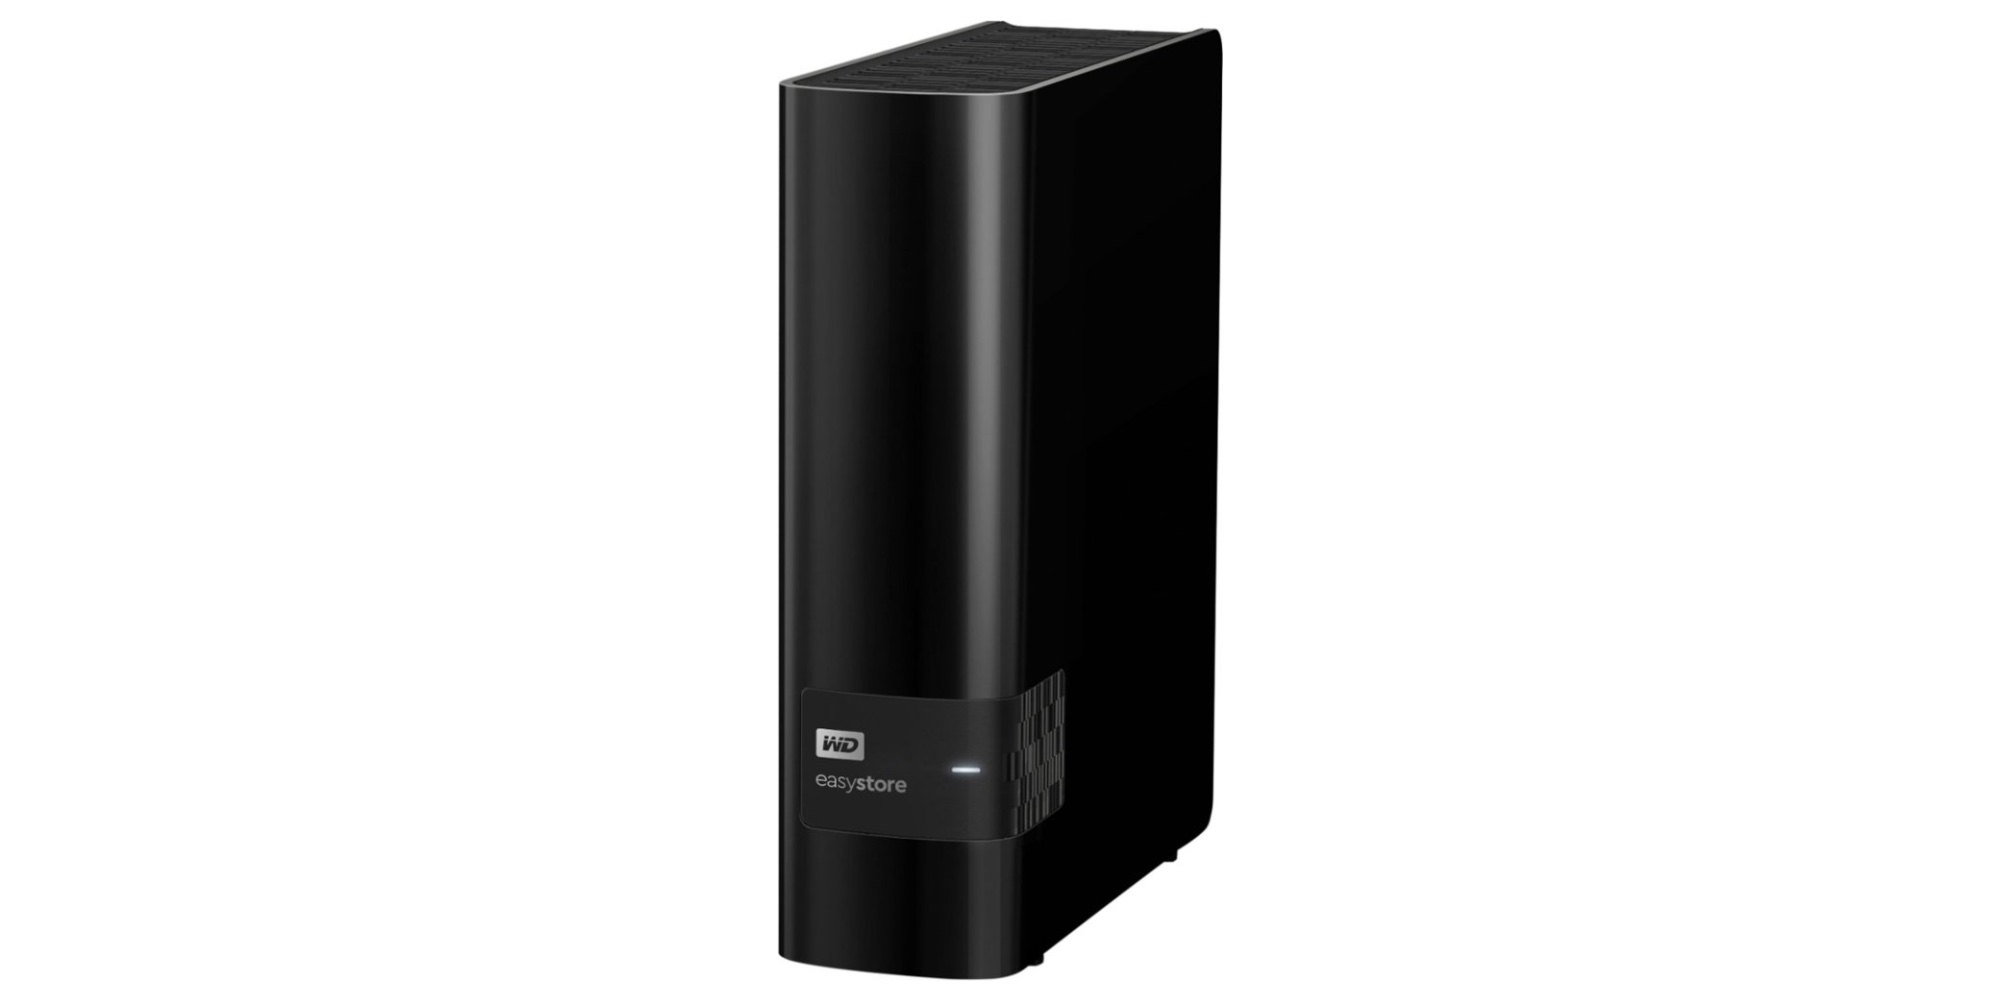 Grow your Plex server with WD's 12TB USB 3.0 Hard Drive at $180 (Save $100) - 9to5Toys